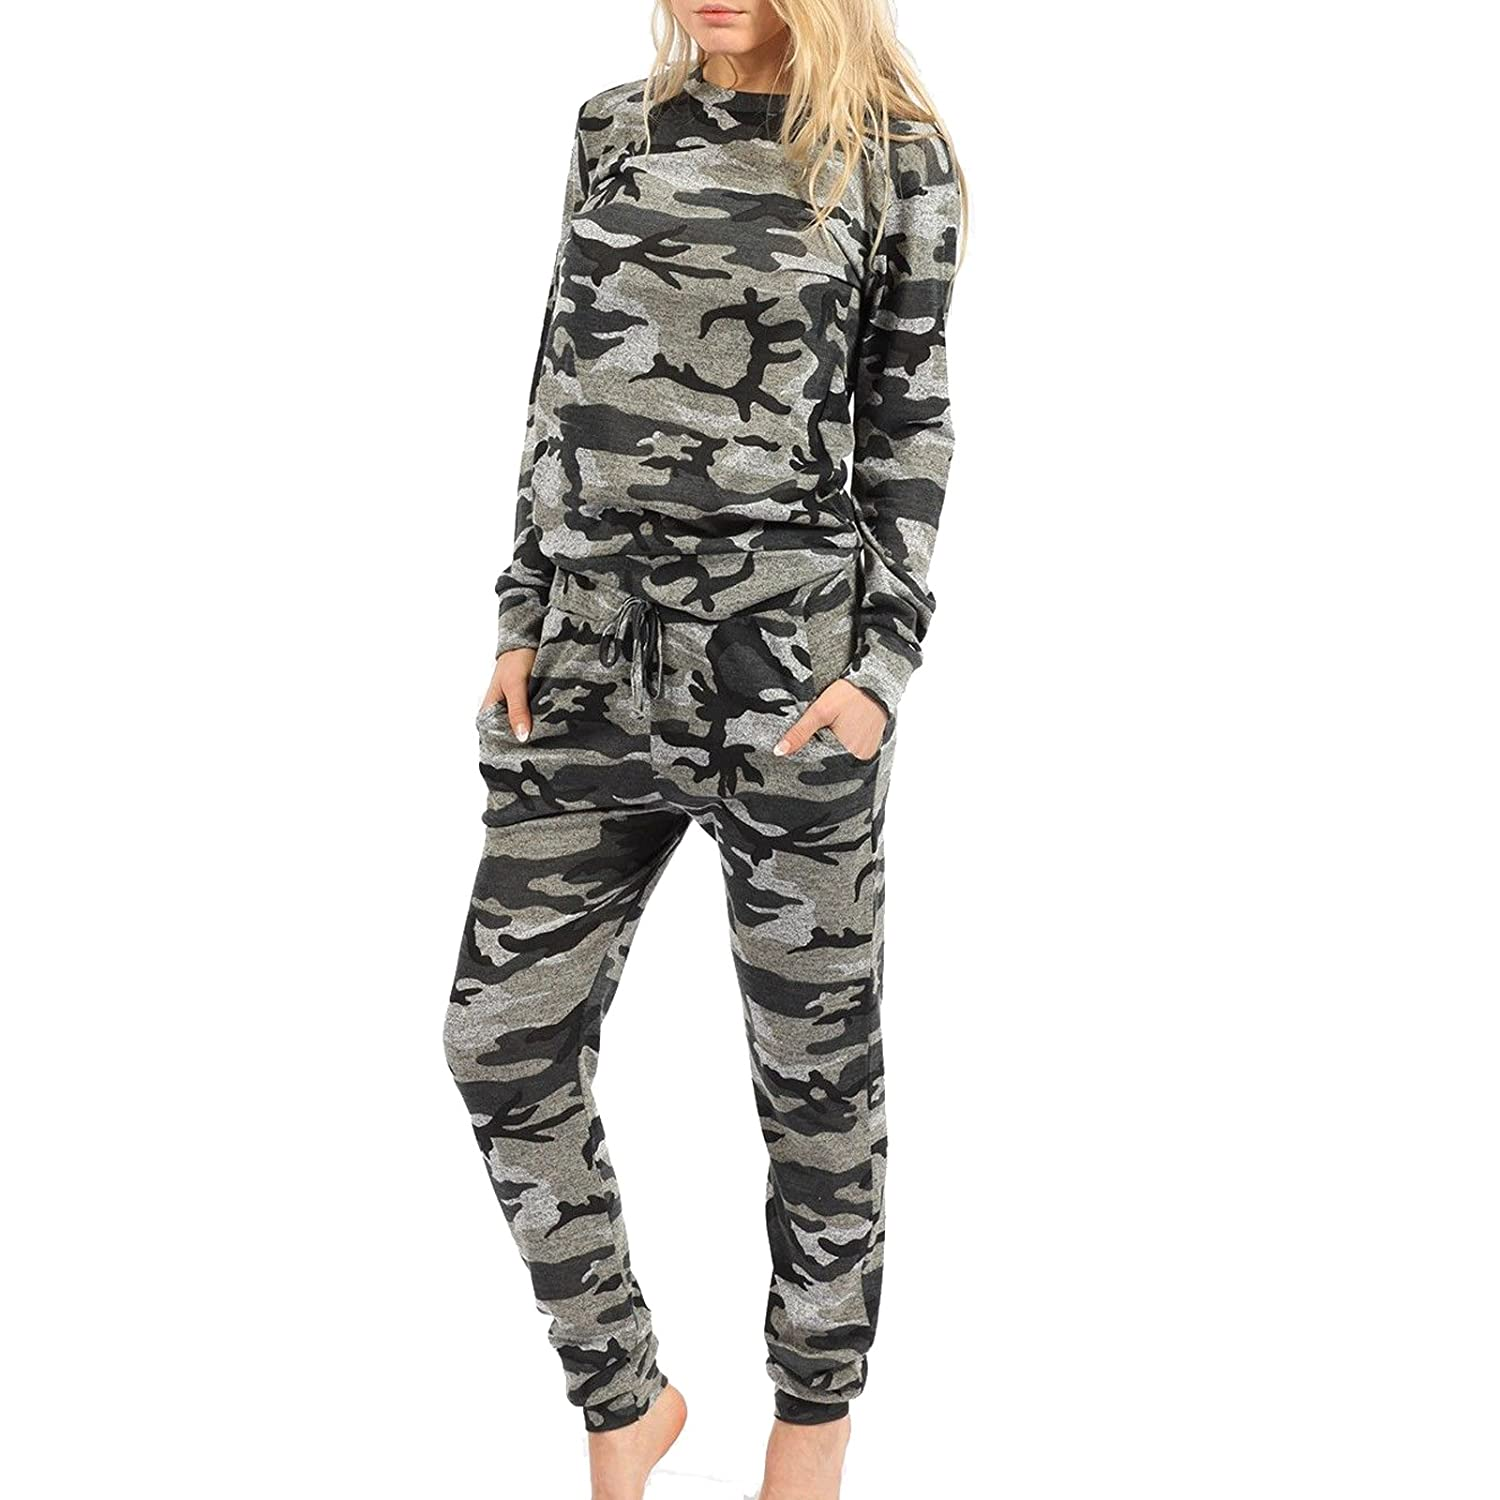 Girly Look OWASI ® Womens Ladies Grey Camouflage Long Sleeves Round Neck Two Piece Army Jogging Tracksuit Top 8-26